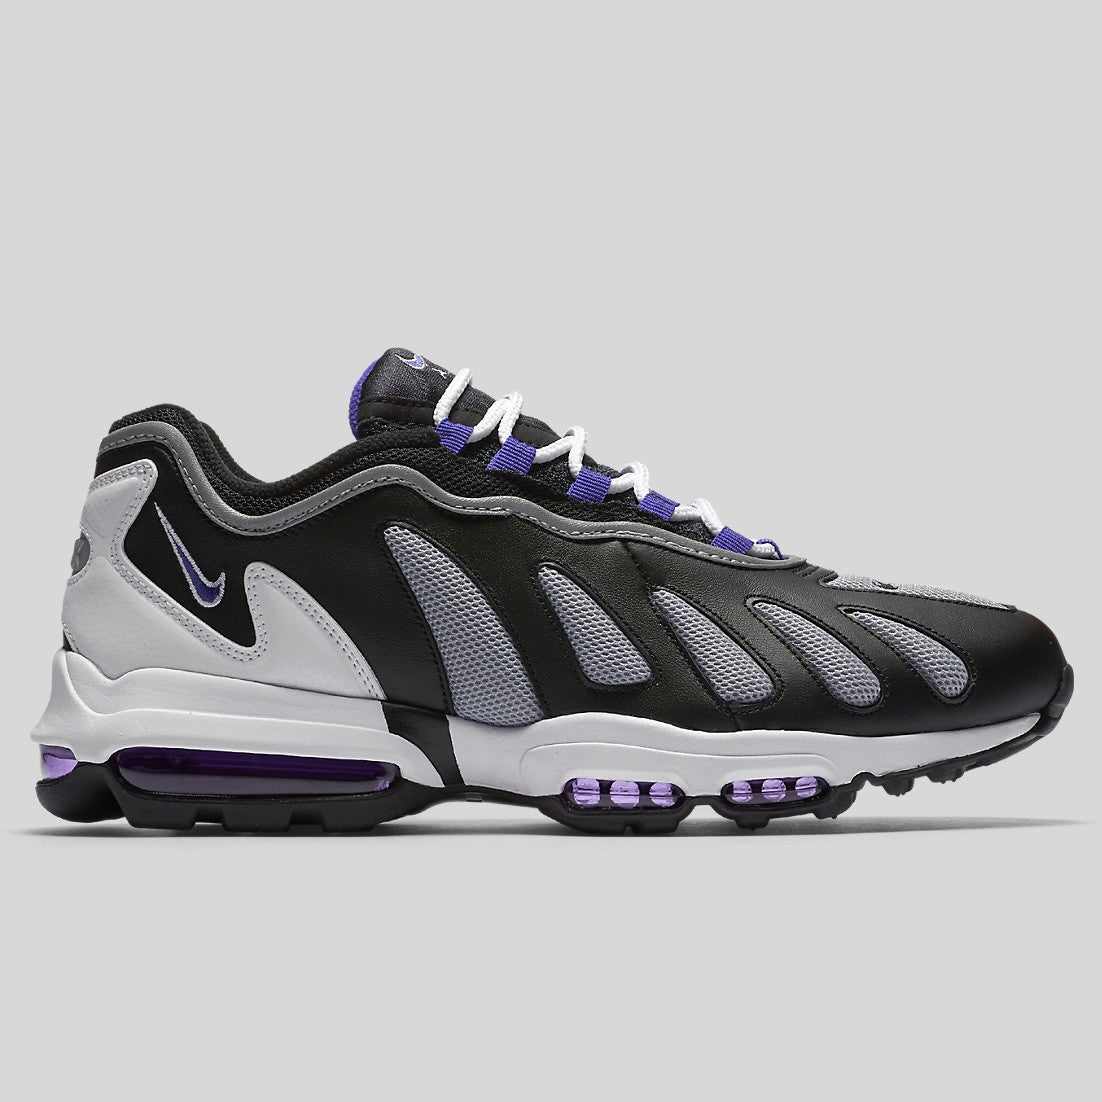 Nike Air Max 96 XX Dark Concord